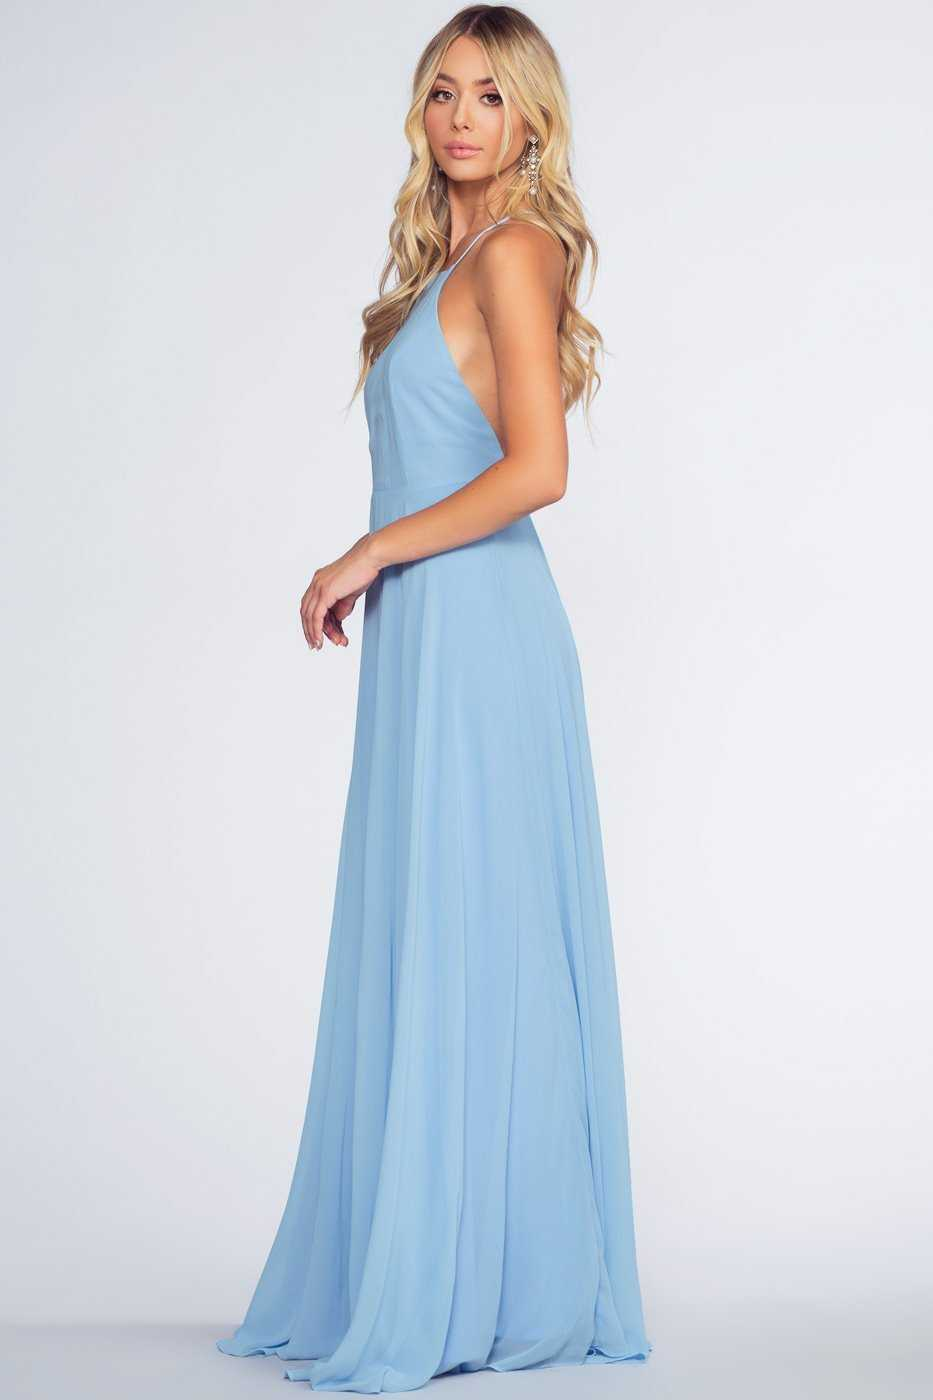 Dresses - Aurora Maxi Dress - Angel Blue